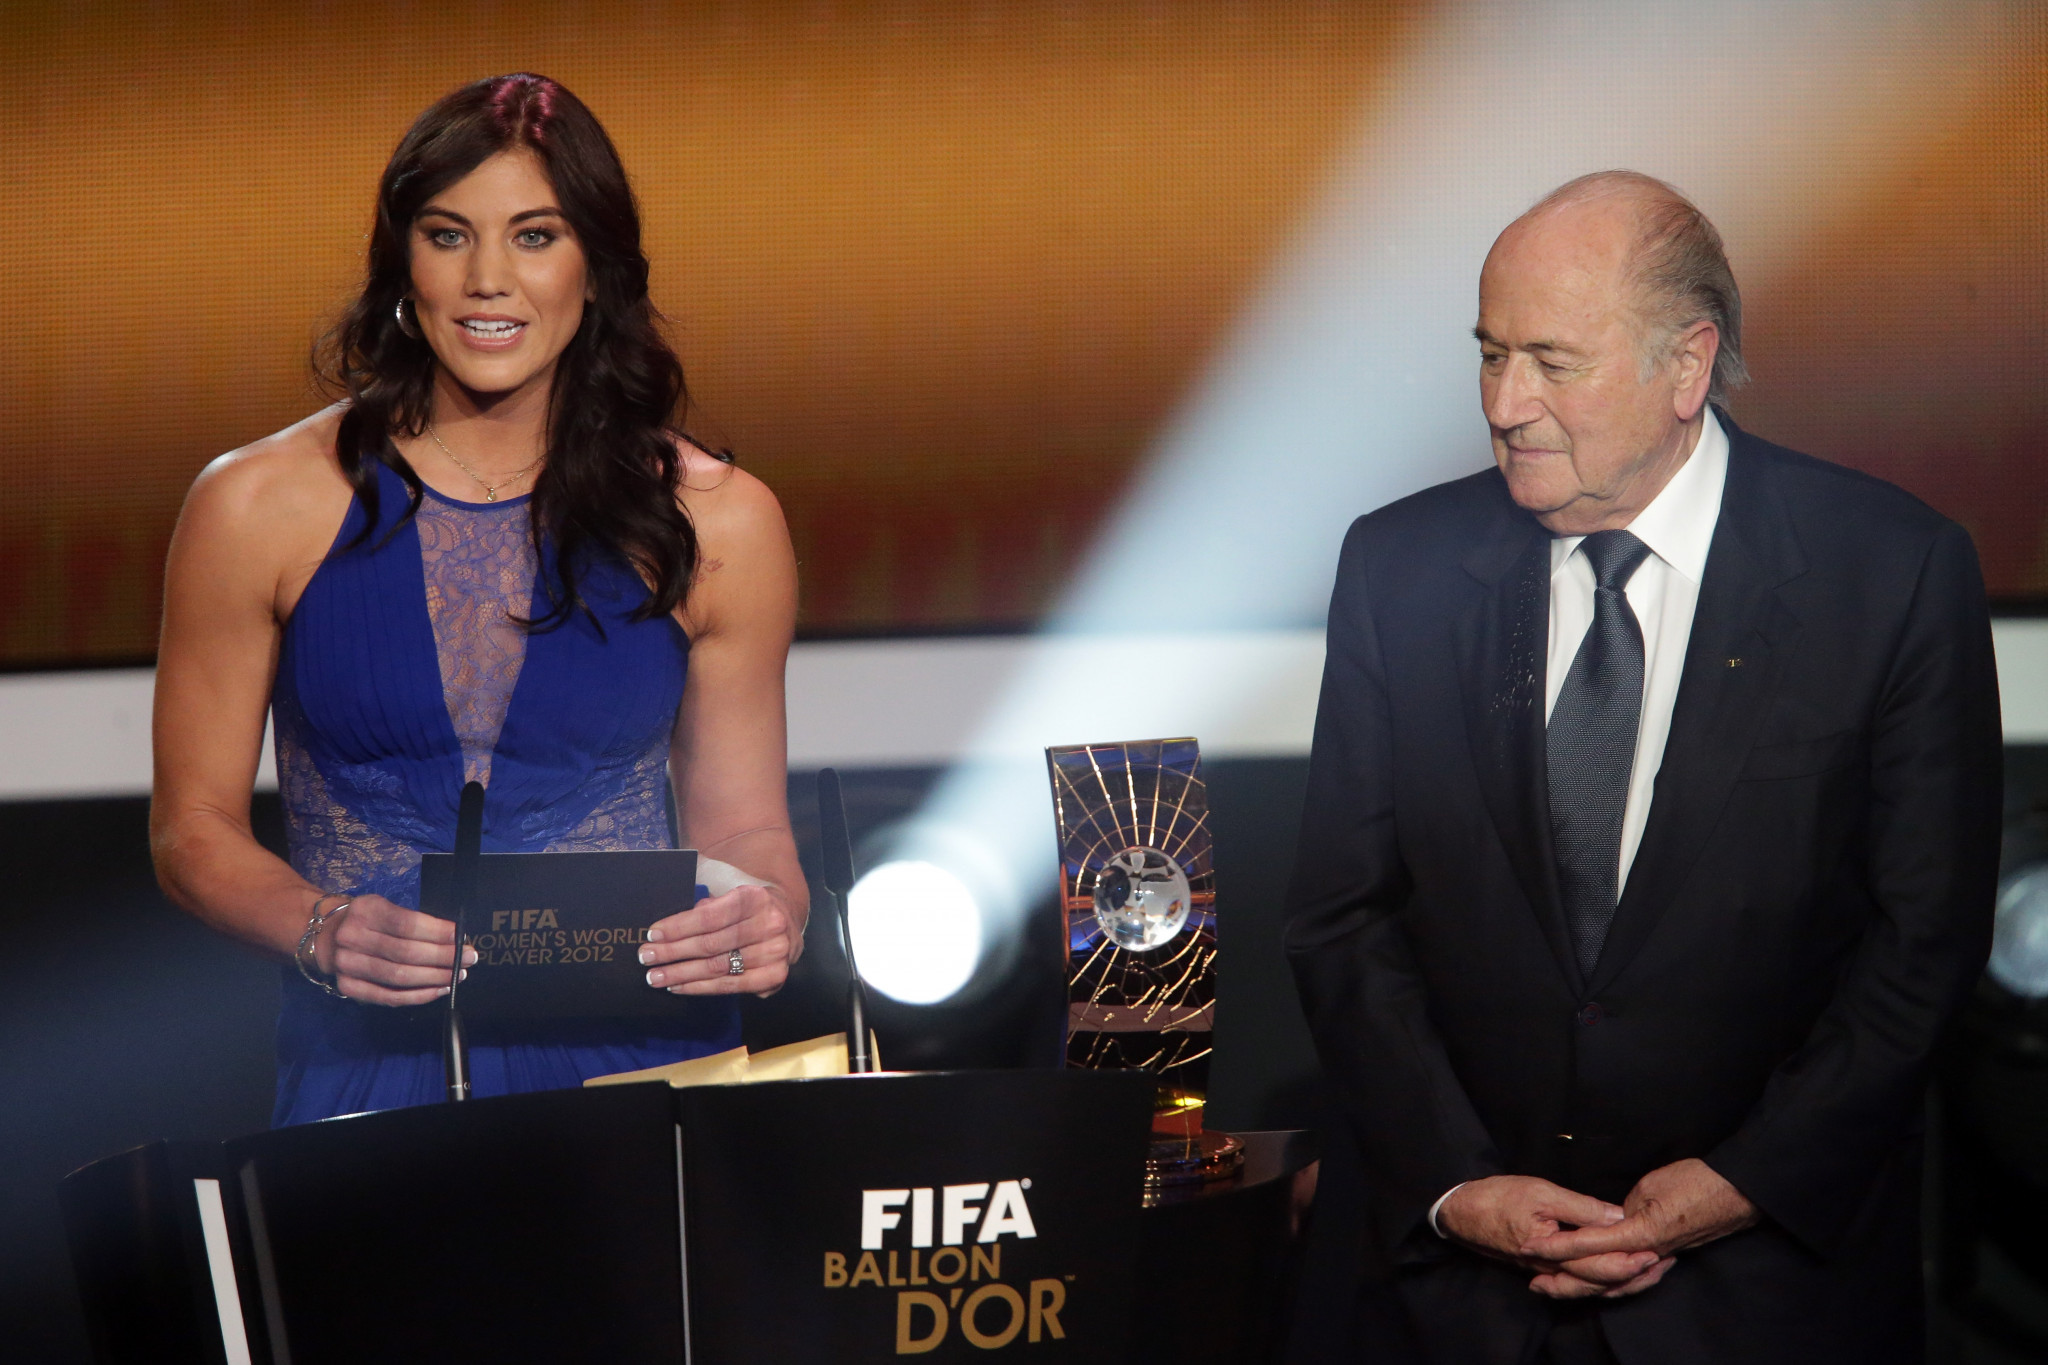 Hope Solo presenting at the 2013 Ballon d'Or Awards with Sepp Blatter, where she claims the sexual assault took place ©Getty Images